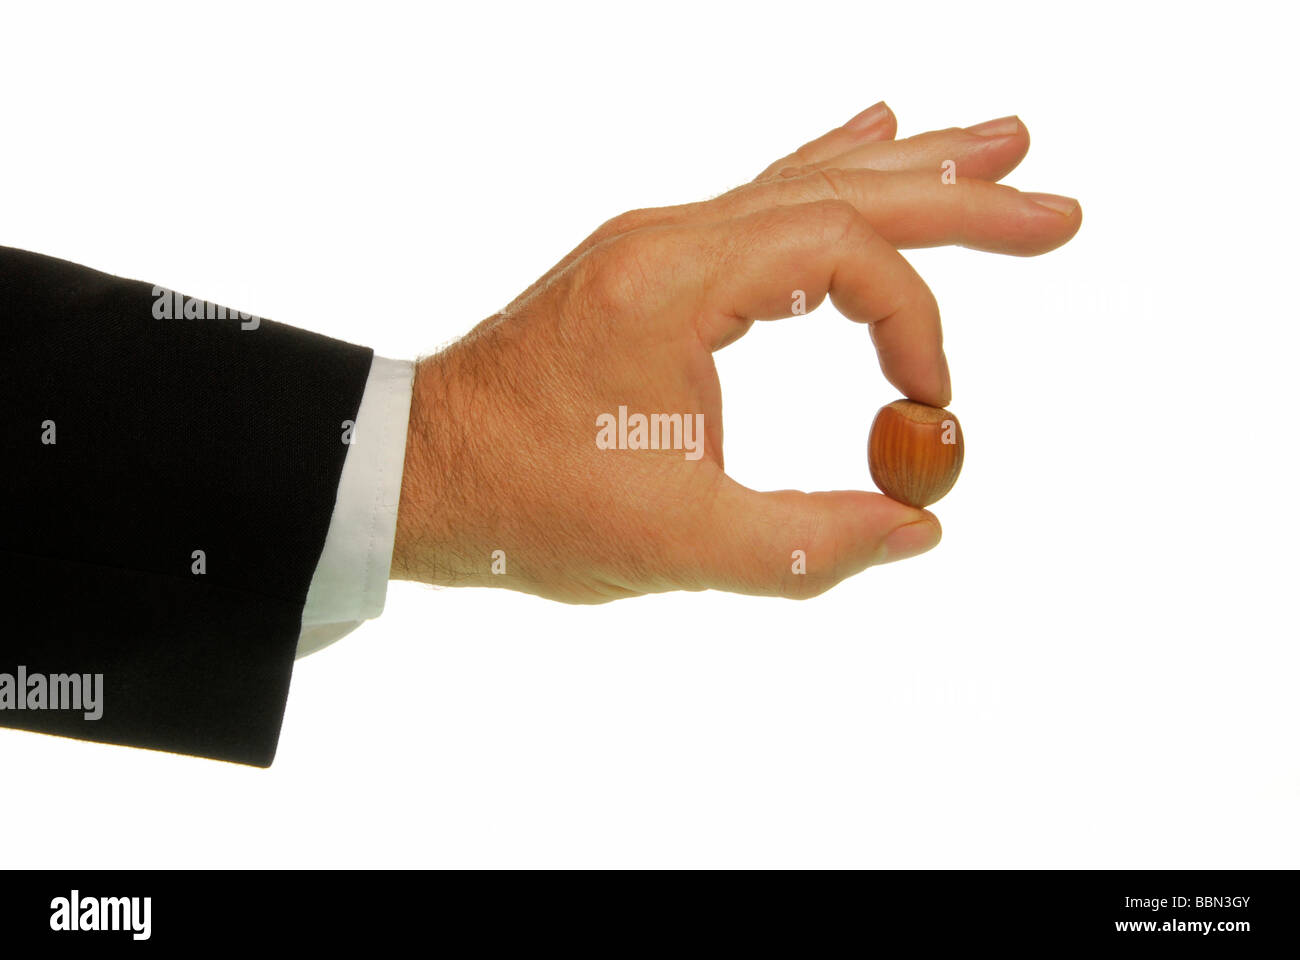 Manager-hand with hazelnut, symbolic image for problems - Stock Image